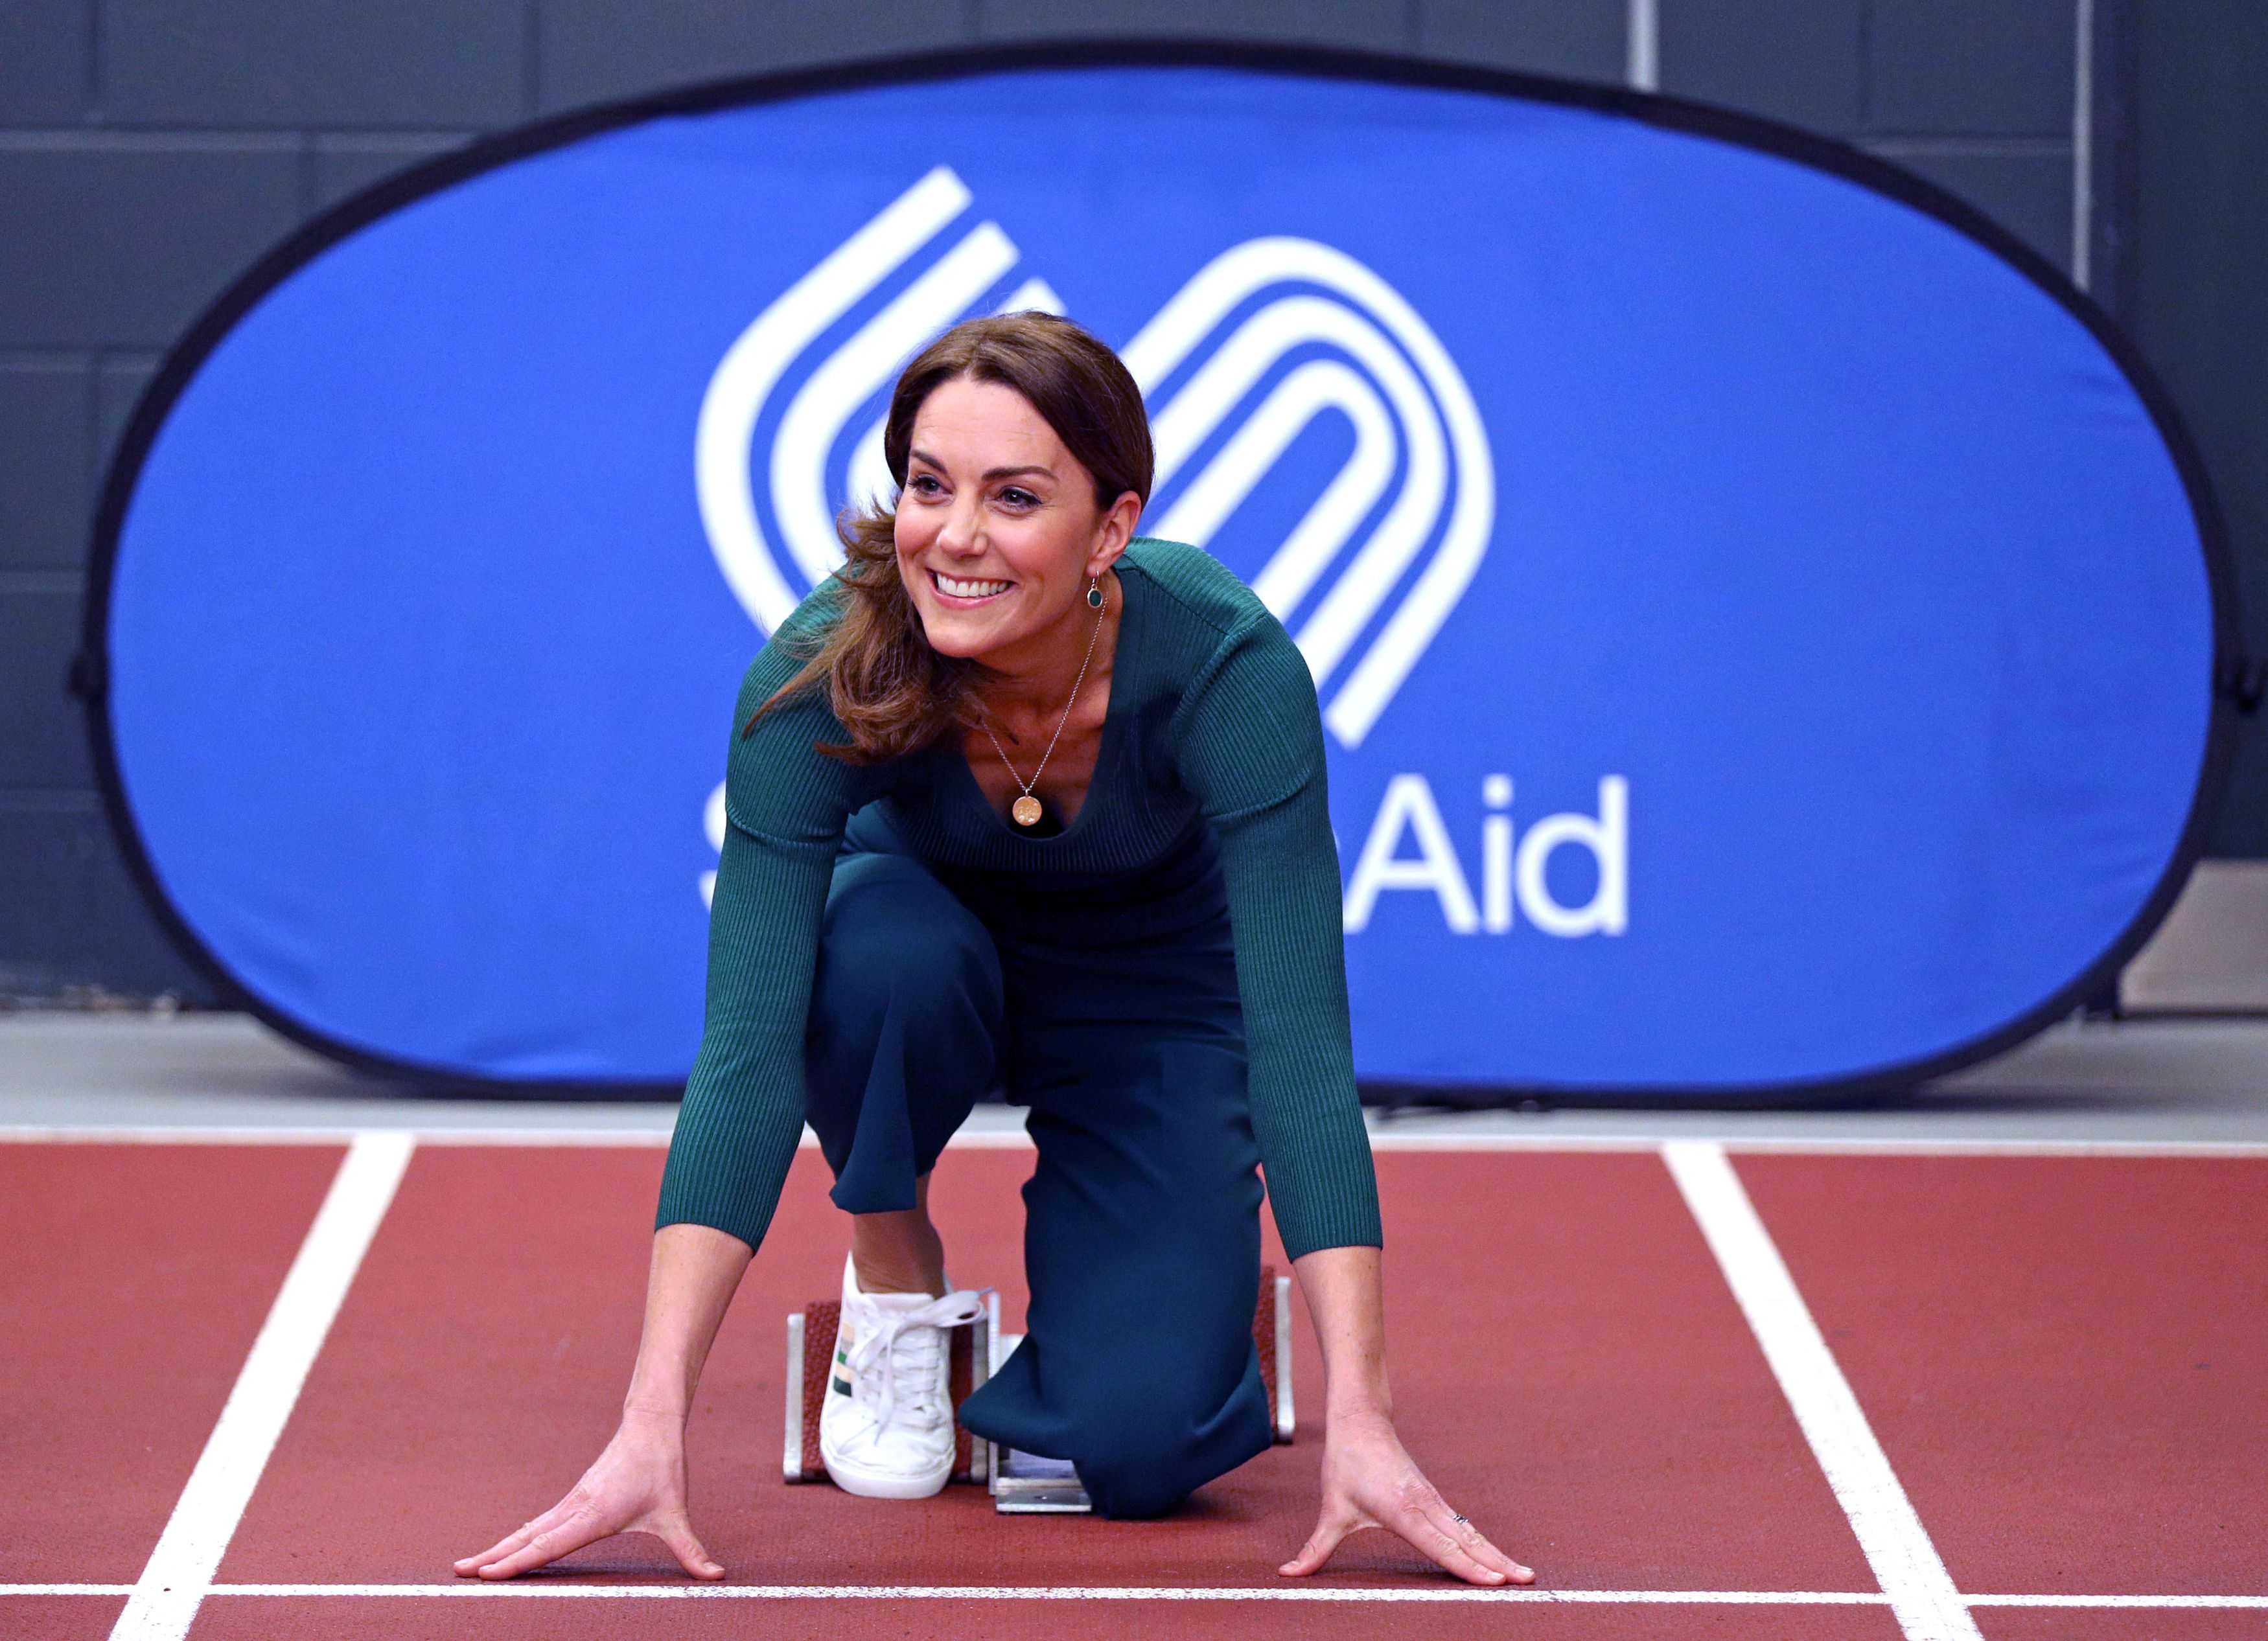 Kate Middleton Makes Being Green Look Easy in Matching Emerald Set and Sneakers